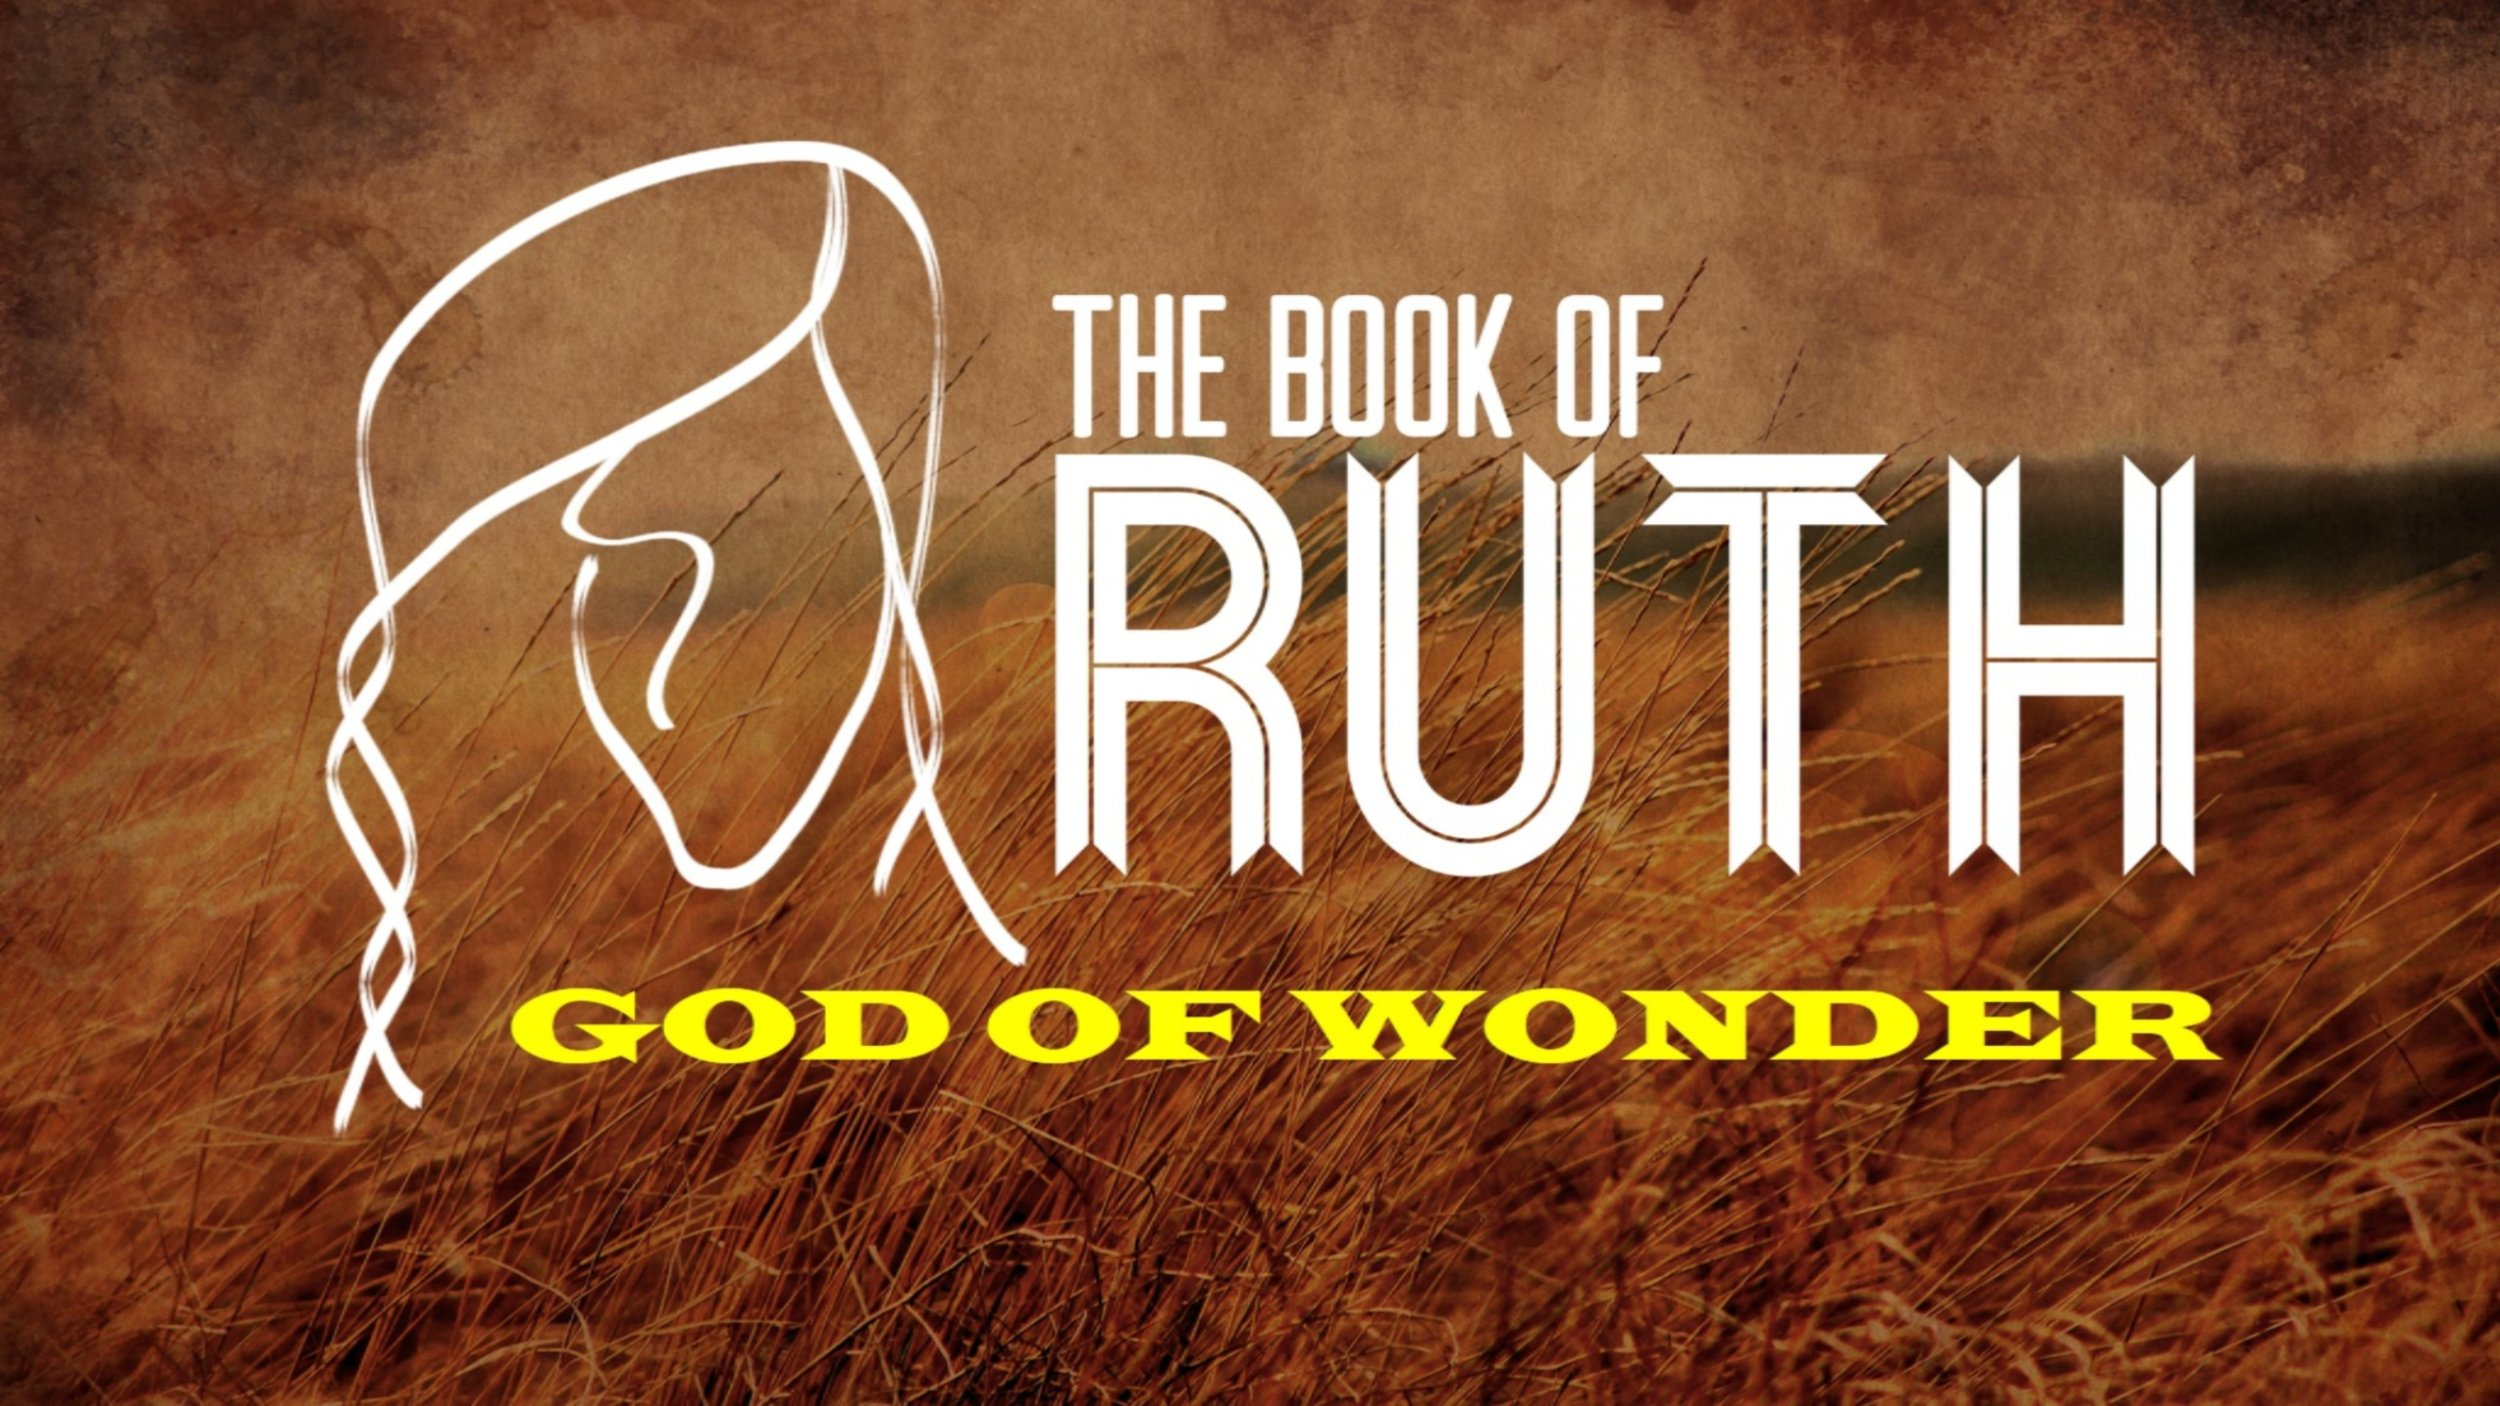 Check out the four part series on Ruth